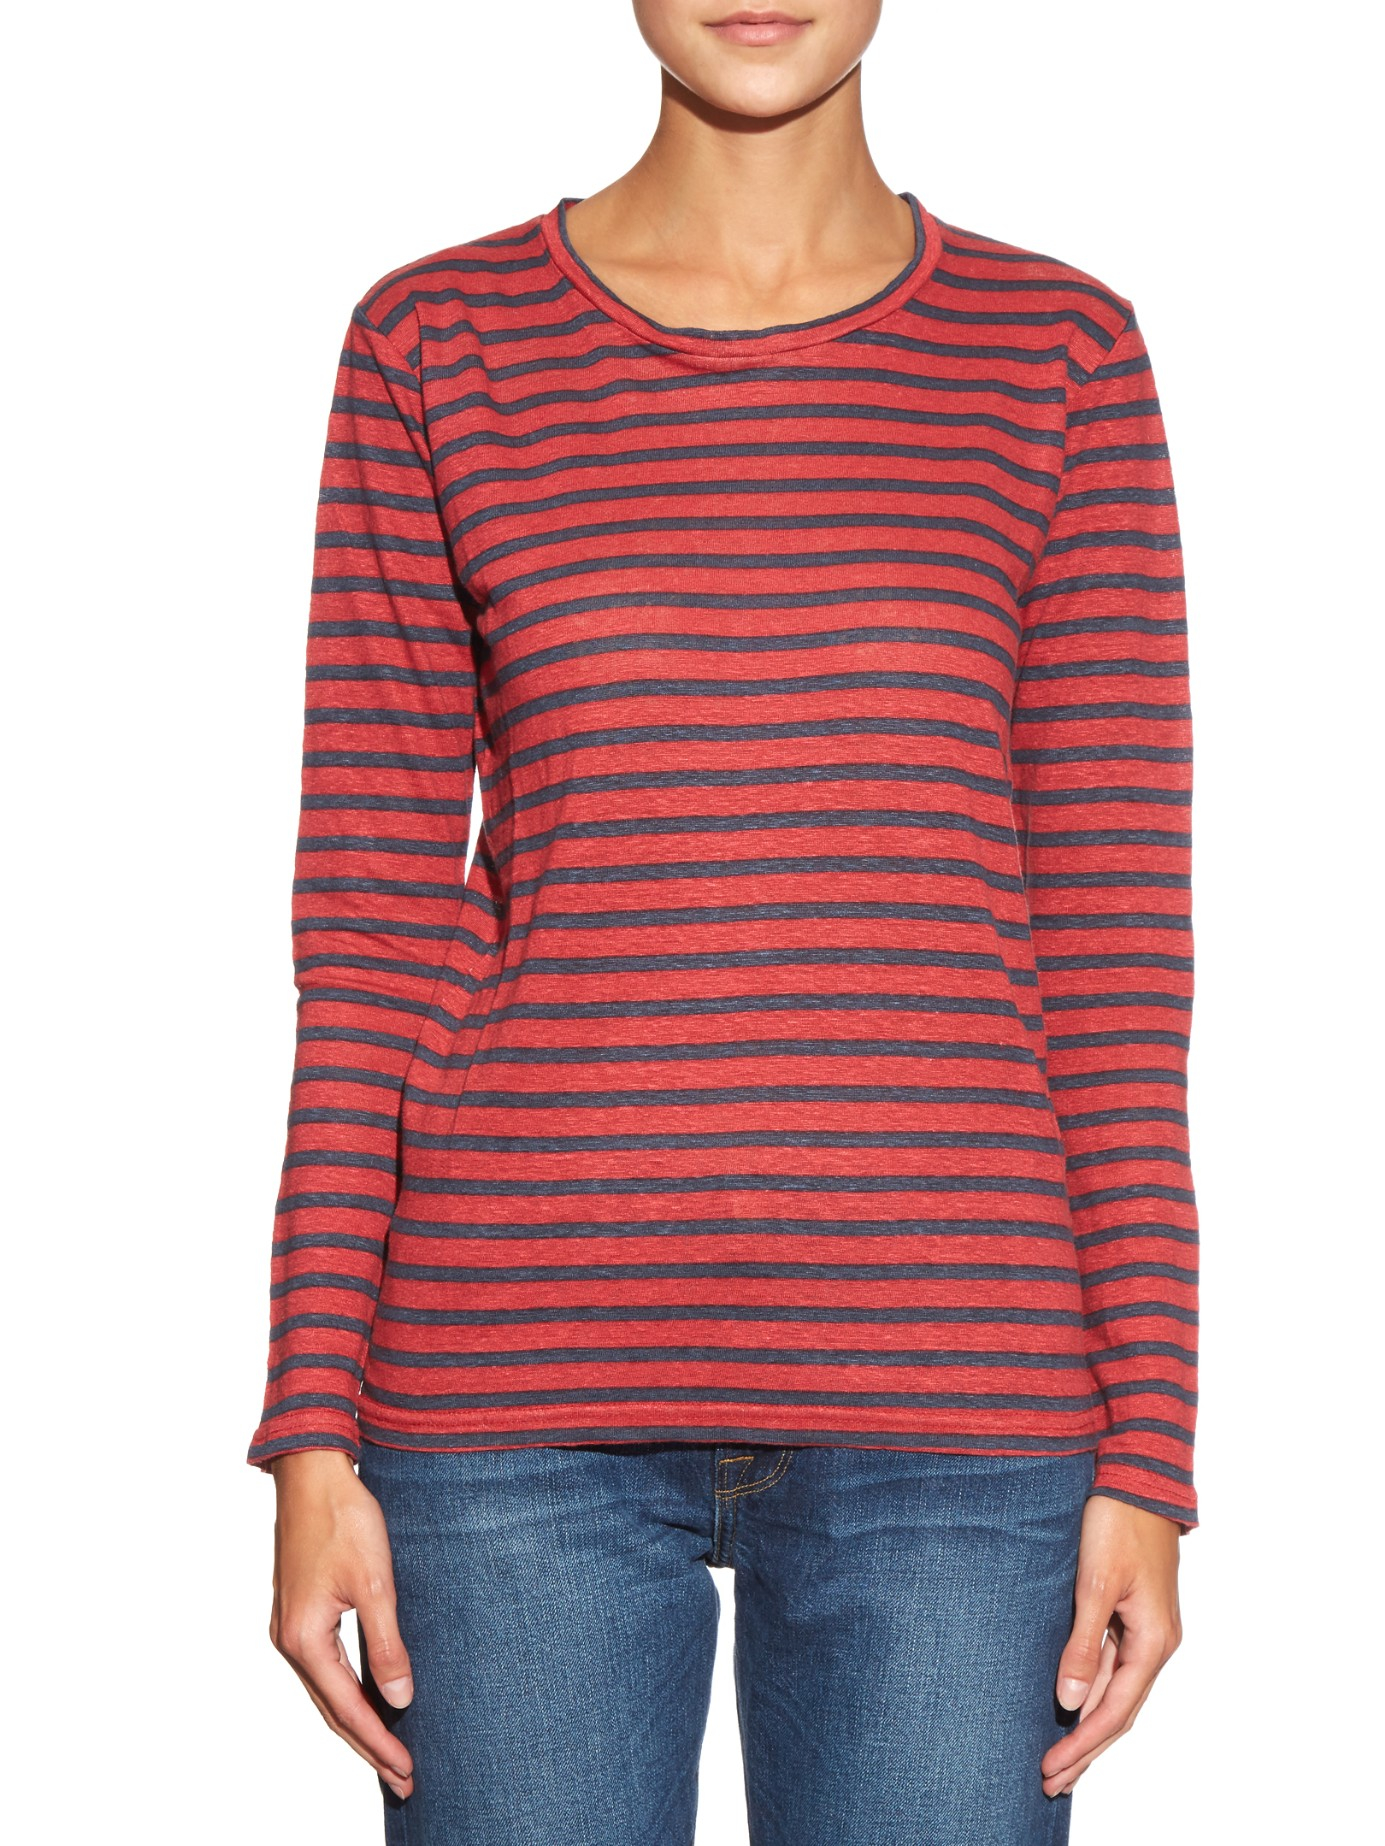 b607cce346d4b Lyst - Étoile Isabel Marant Karon Striped Linen T-shirt in Red